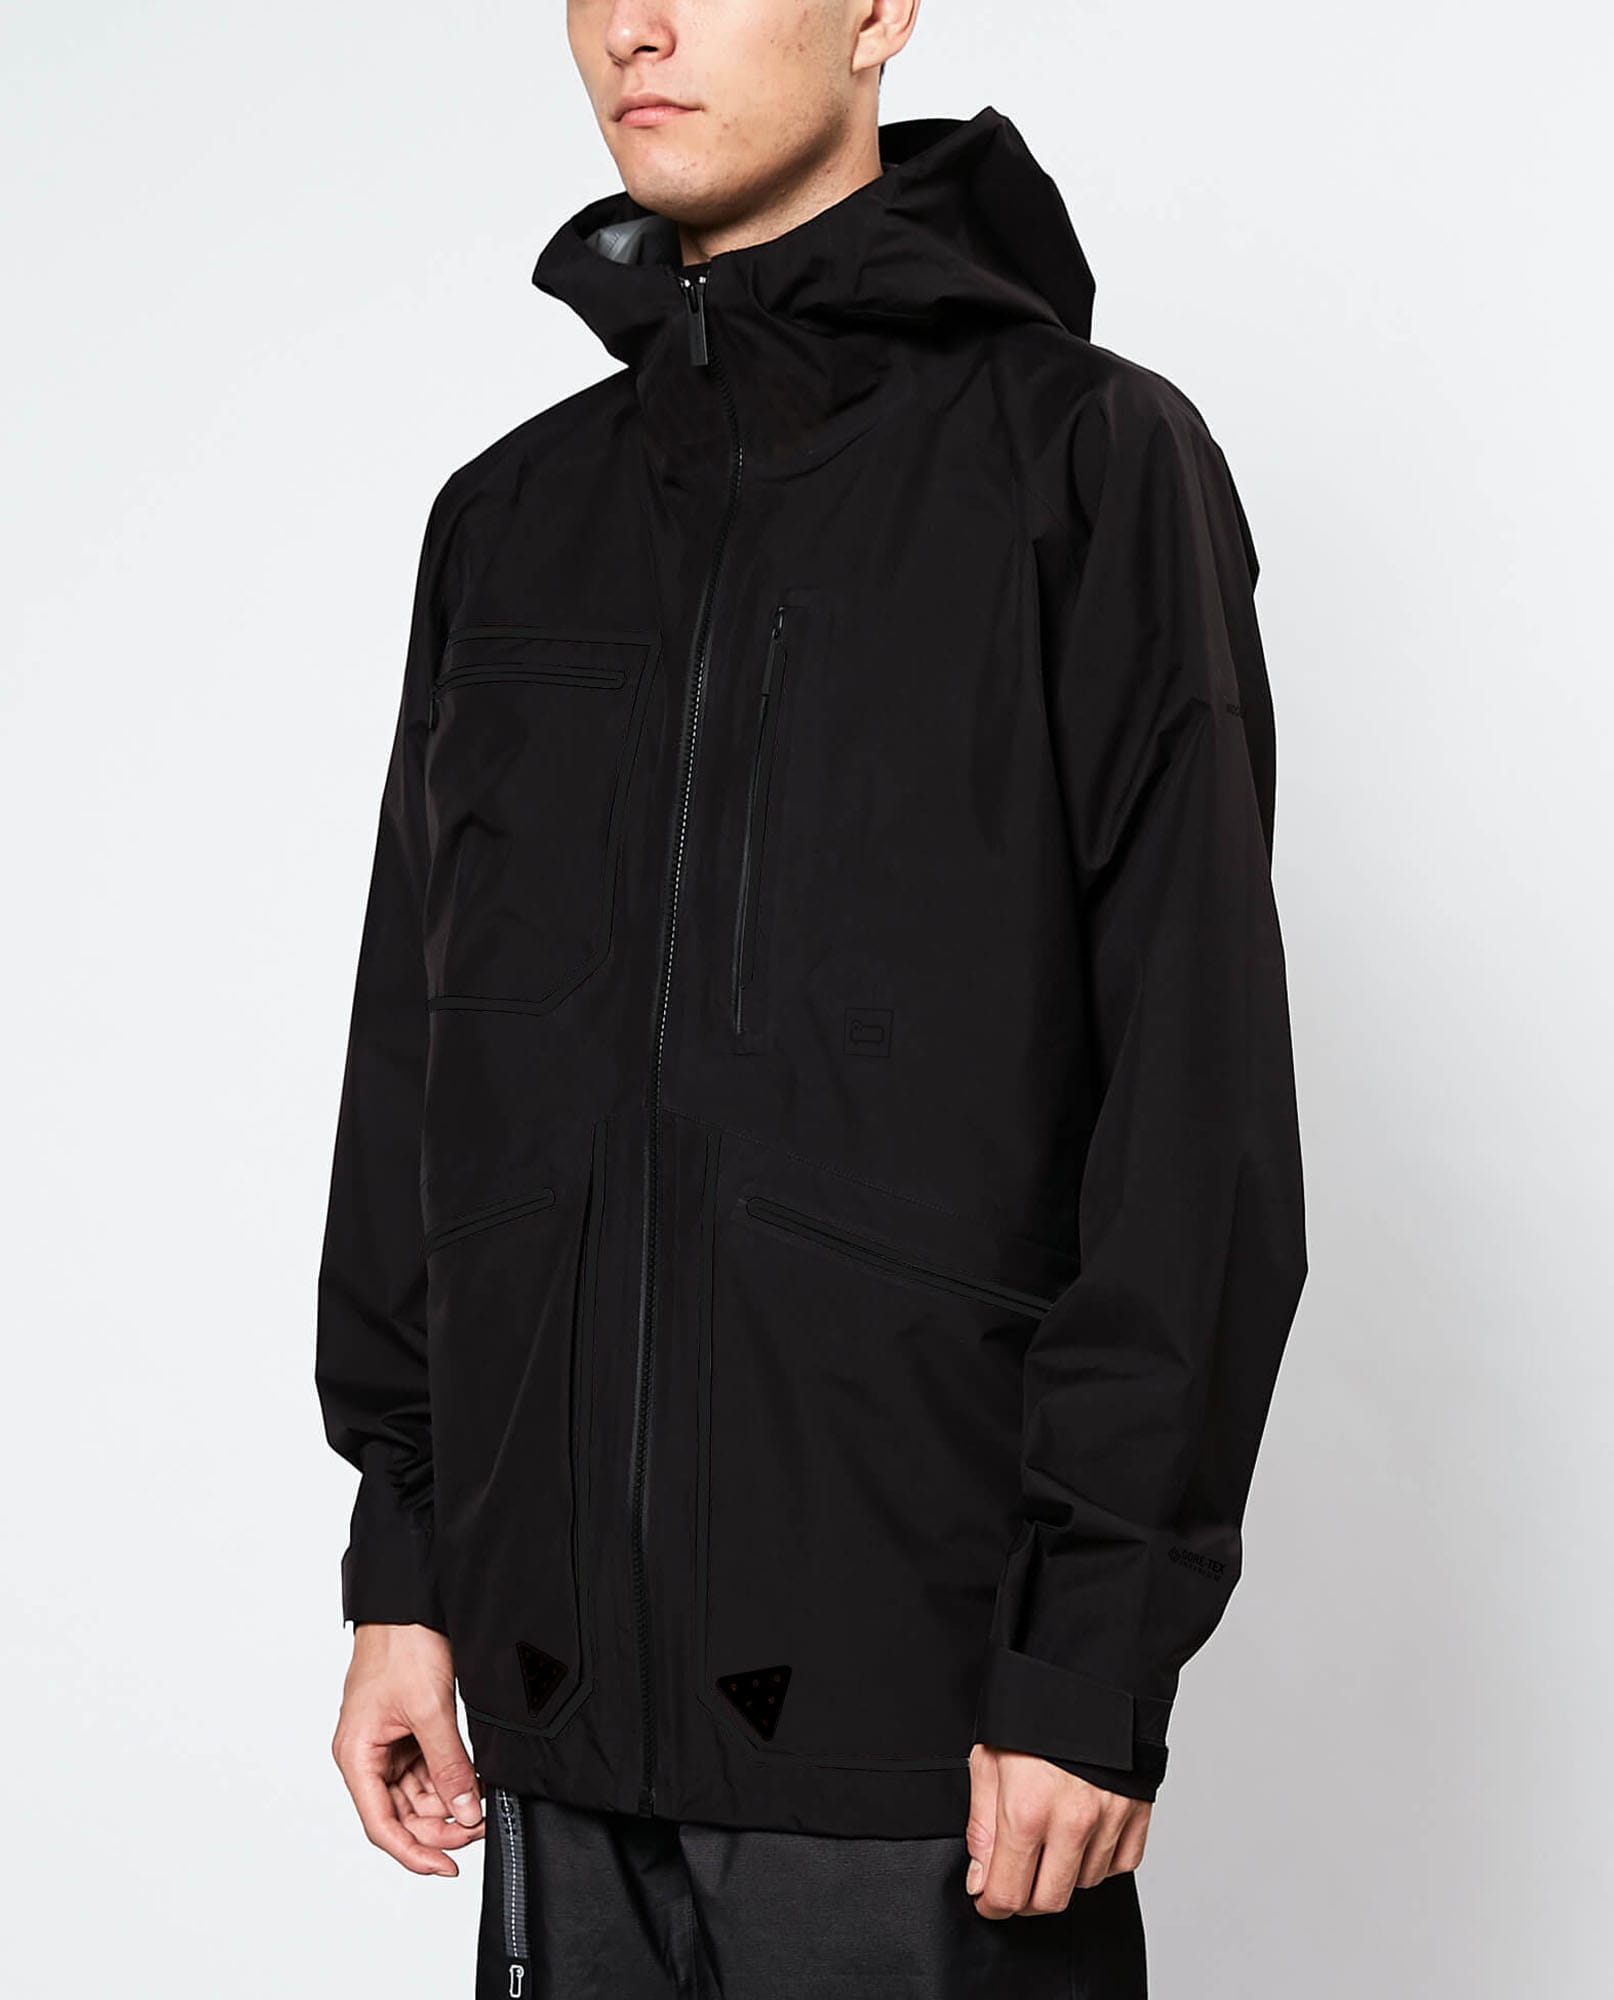 BLUE RIDGE MOUNTAIN JACKET